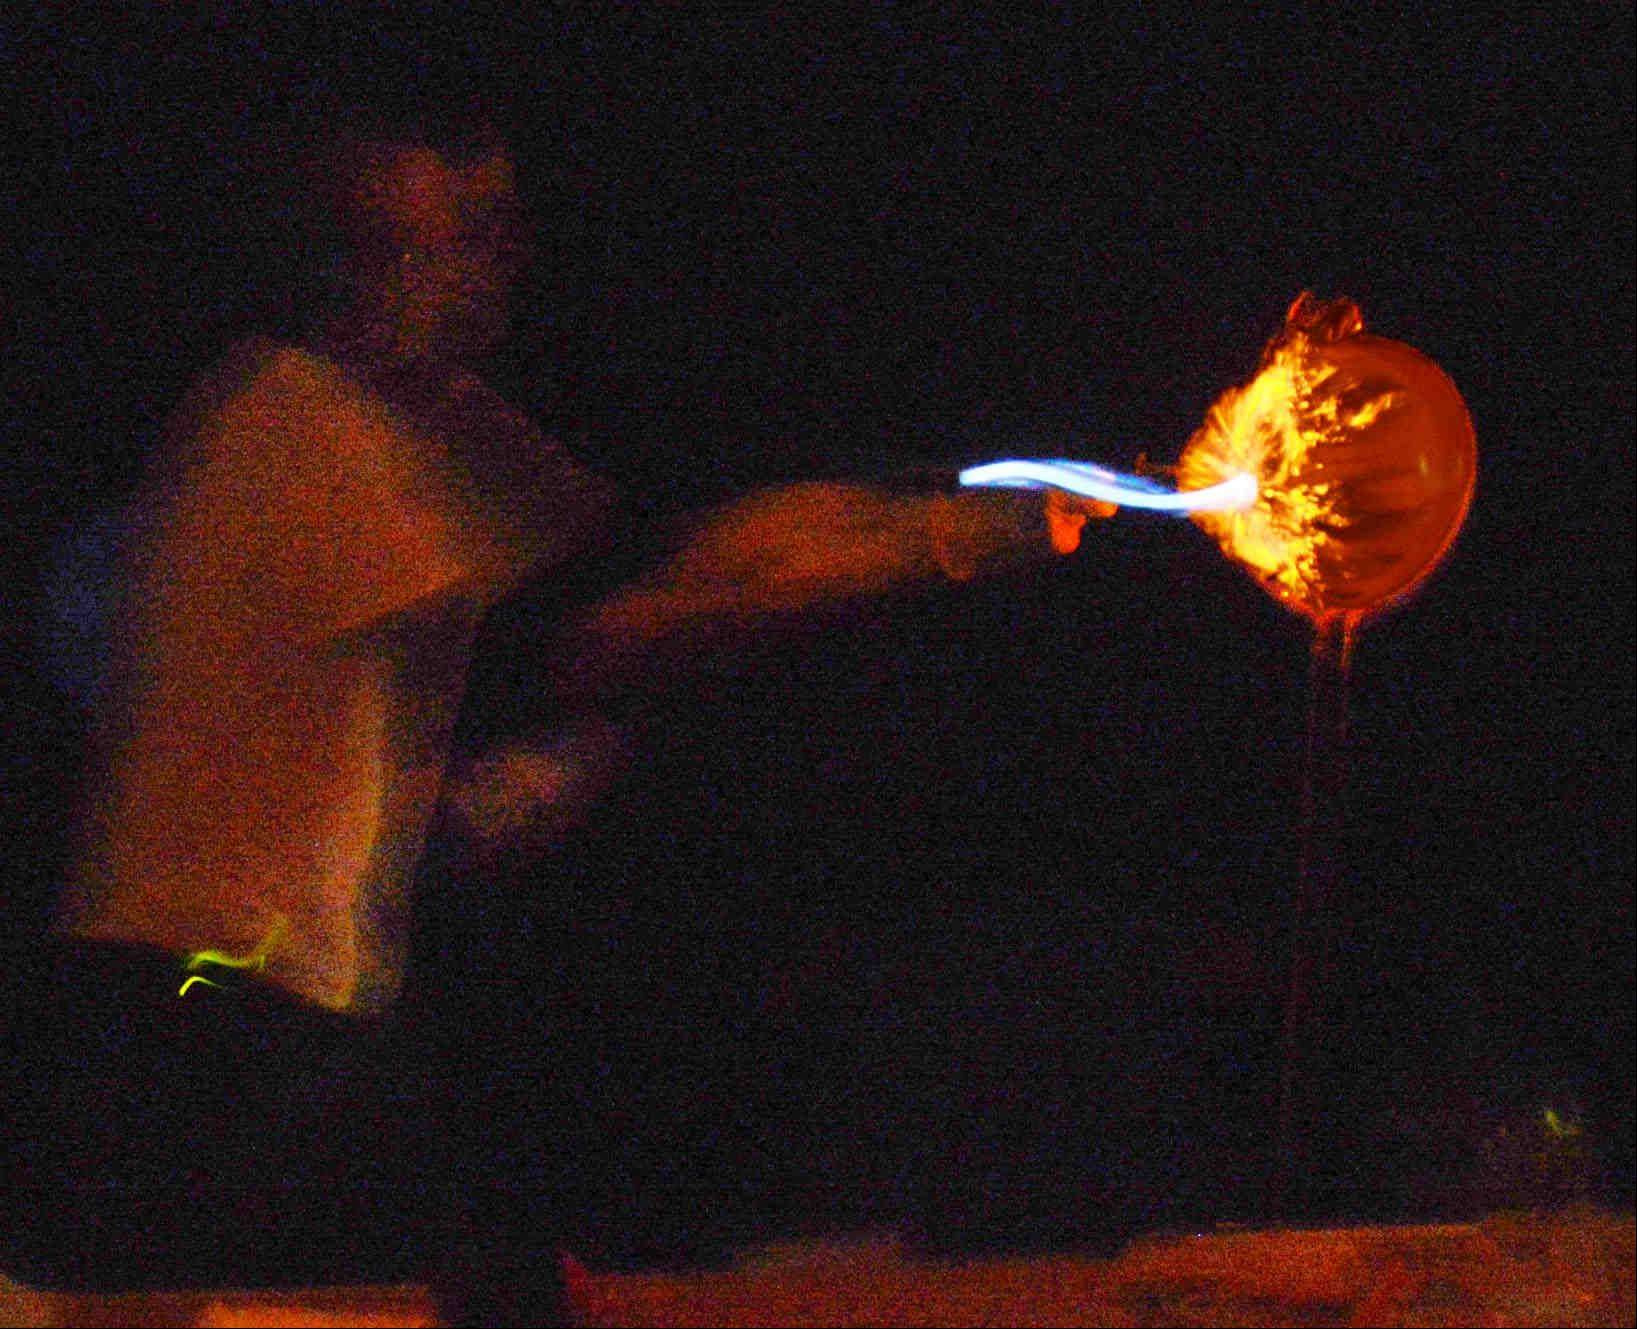 A hydrogen-filled balloon explodes in an instant as former Naperville North High School science teacher Lee Marek ignites it in a dark auditorium at Fermi Lab in Batavia Sunday during a Weird Science presentation.